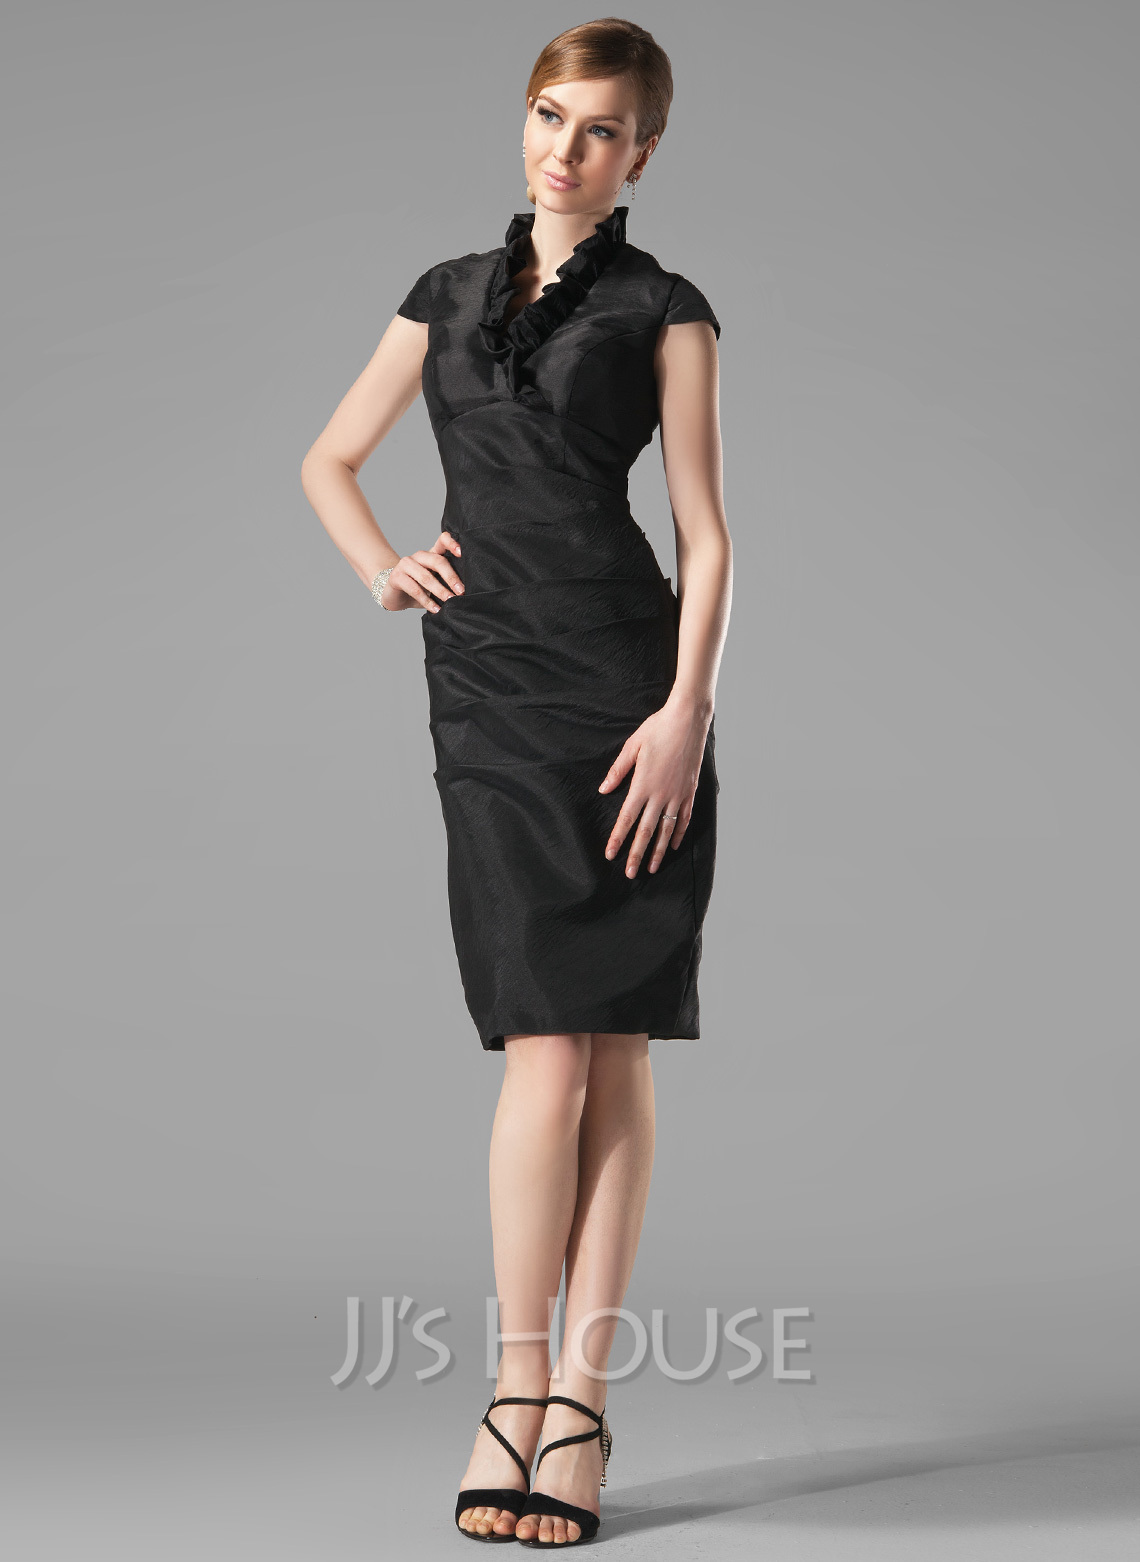 From beautiful dresses for special events to sophisticated styles for the office, our collection of elegant knee length dresses are perfect for every occasion.